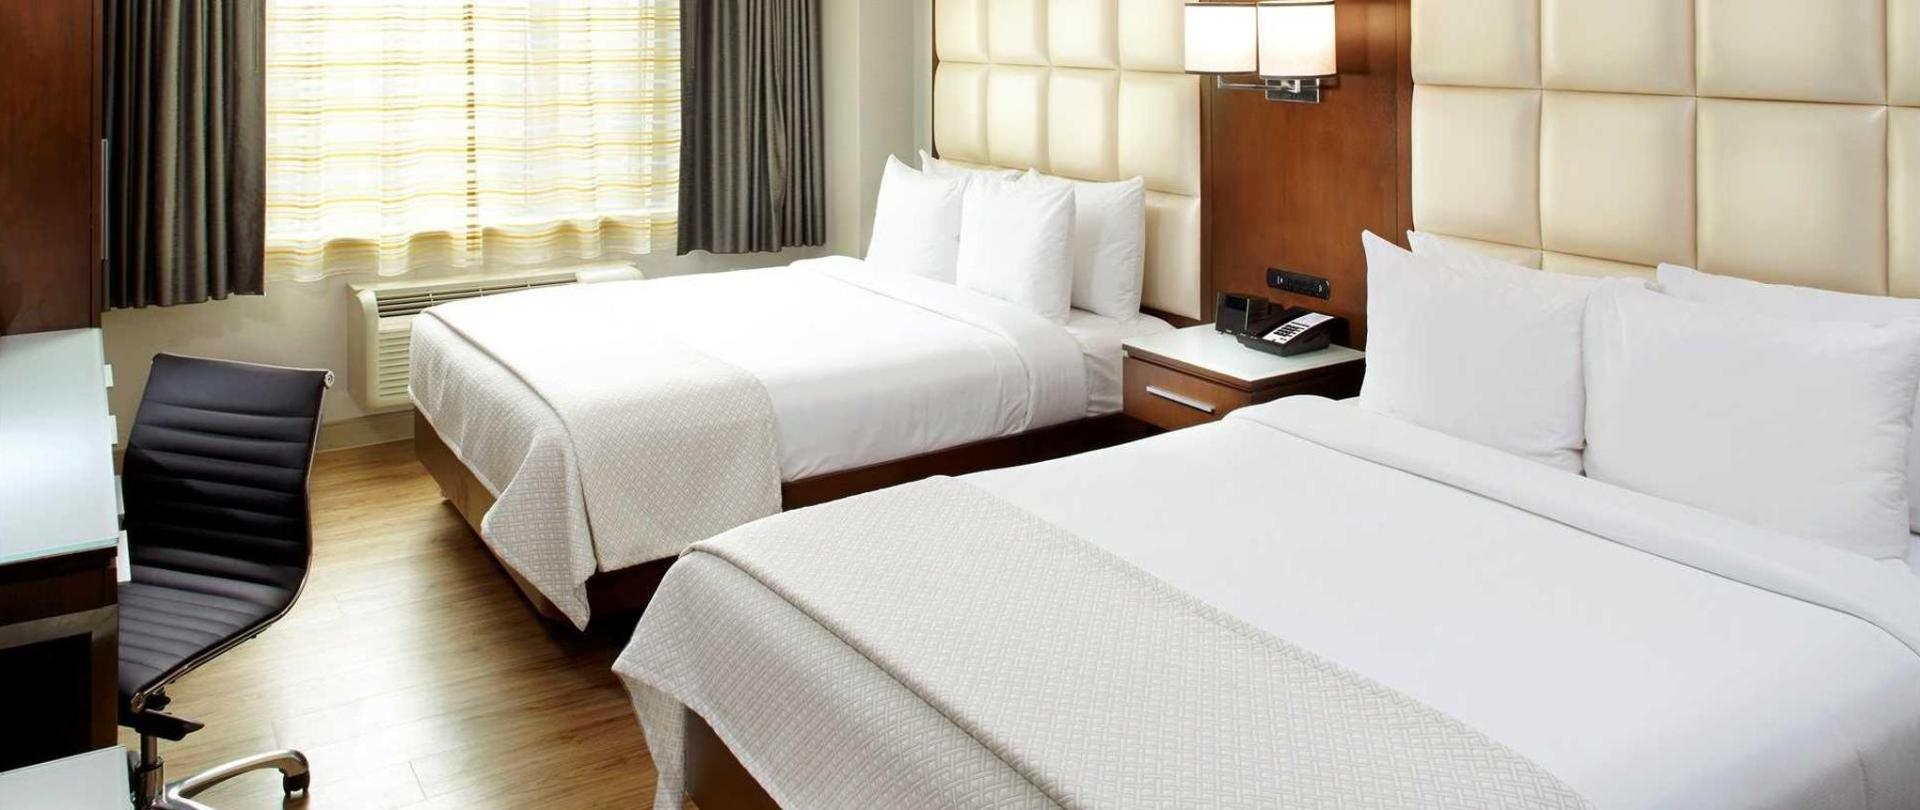 Cambria Hotel New York - Chelsea | Spacious Hotel Rooms with